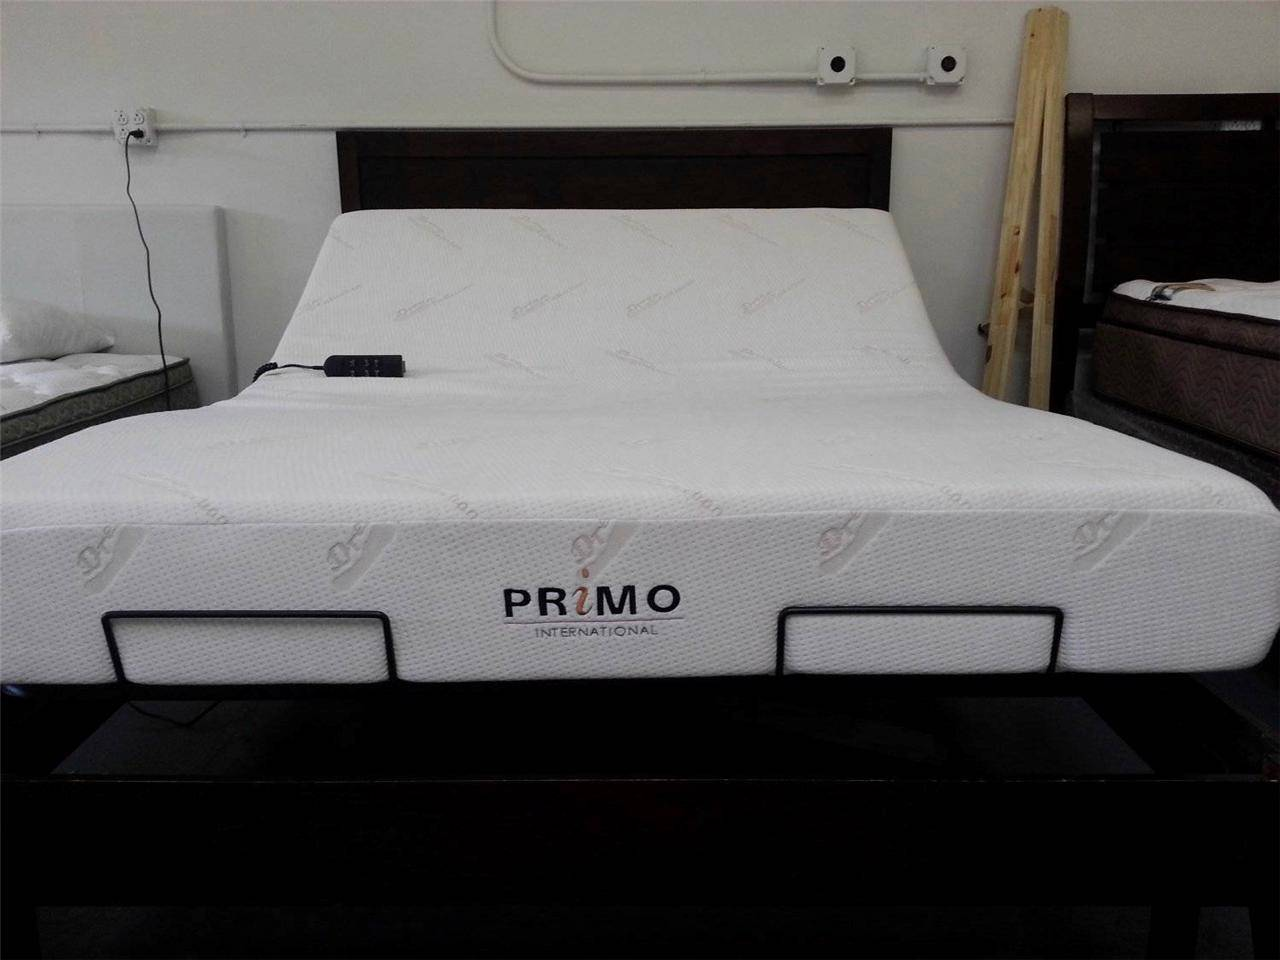 Primo adjustable beds and memory foam mattress electric bed split king size ebay Memory foam mattress king size sale